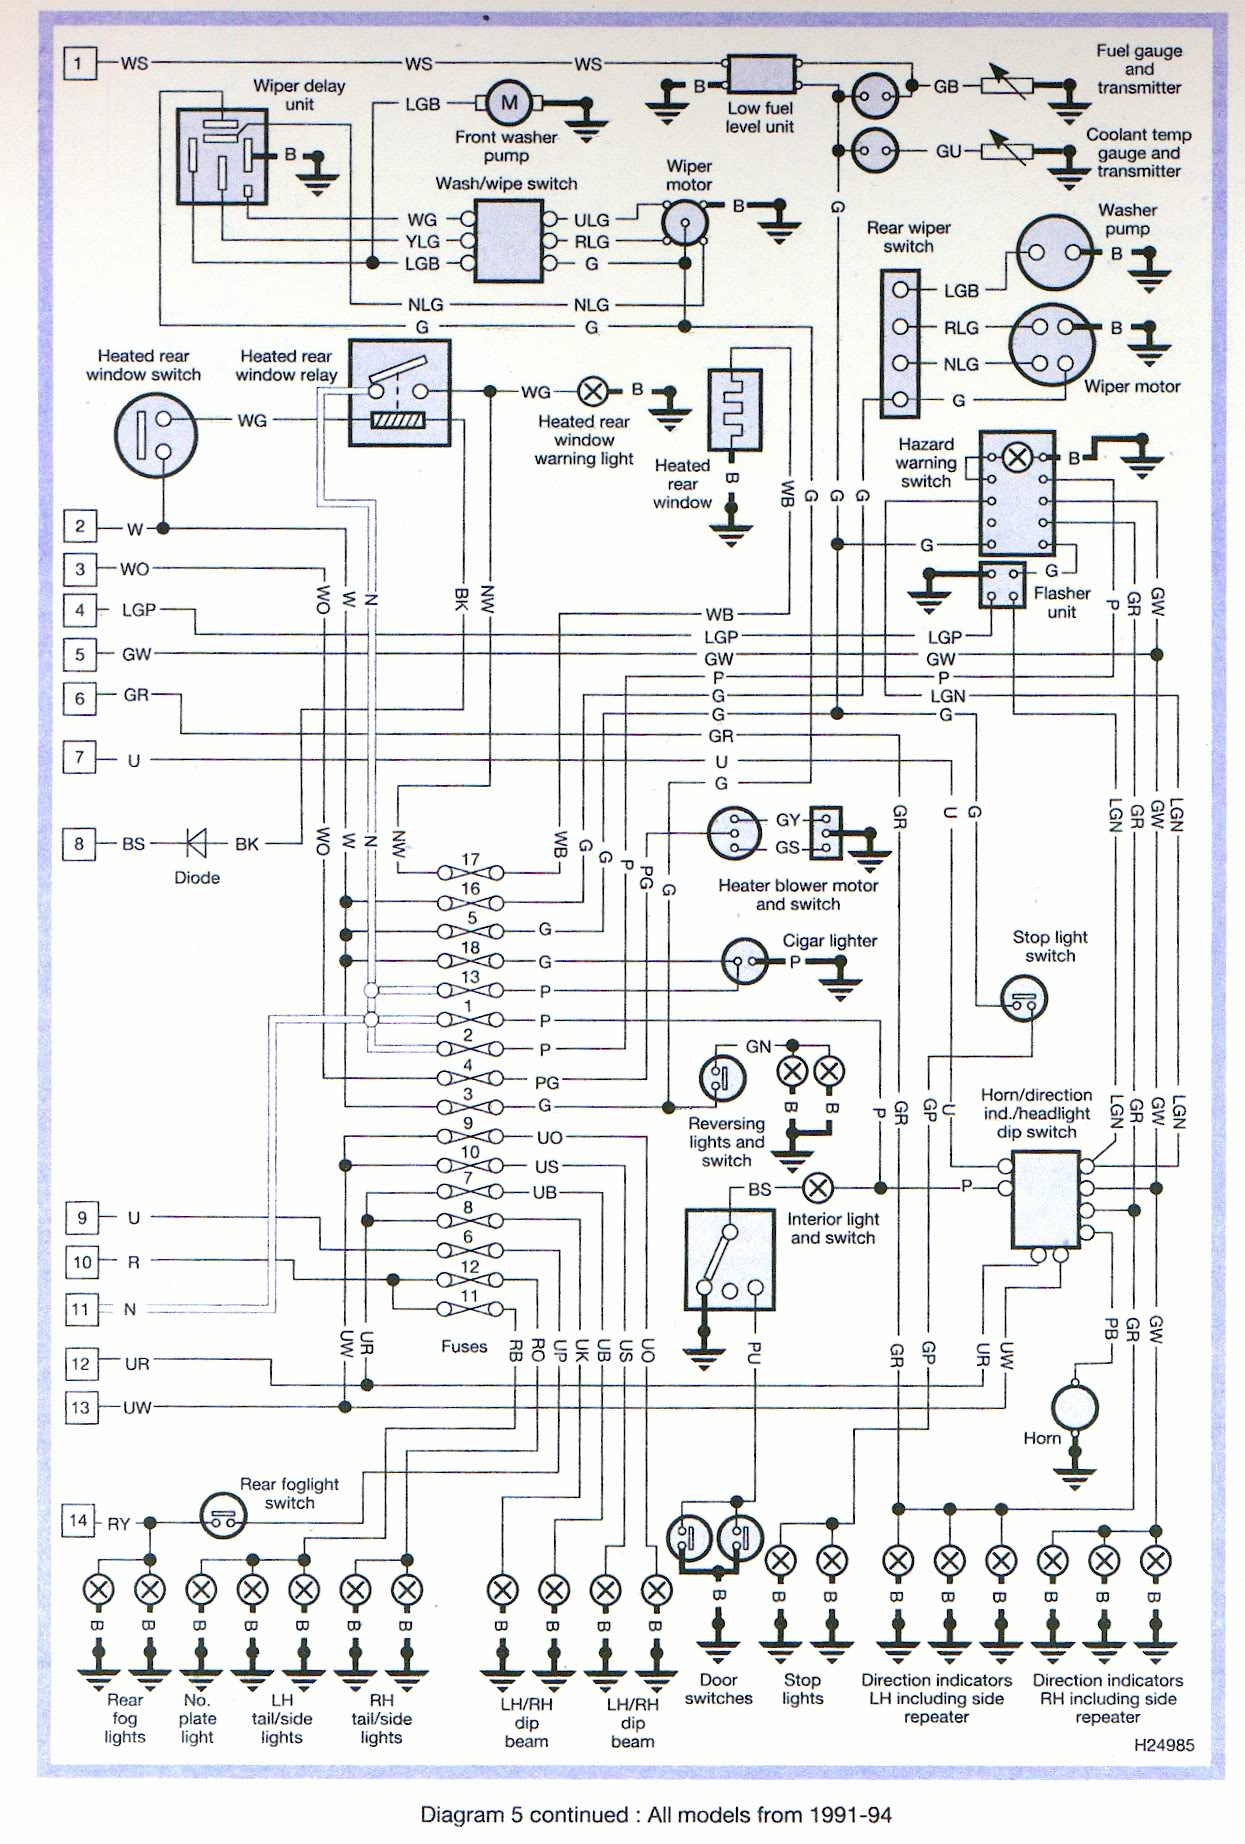 ✦DIAGRAM BASED✦ Land Rover Defender 200tdi Workshop Wiring Diagram  COMPLETED DIAGRAM BASE Wiring Diagram - JABLONSKIDIAGRAM.PCINFORMI.ITDiagram Based Completed Edition - PcInformi